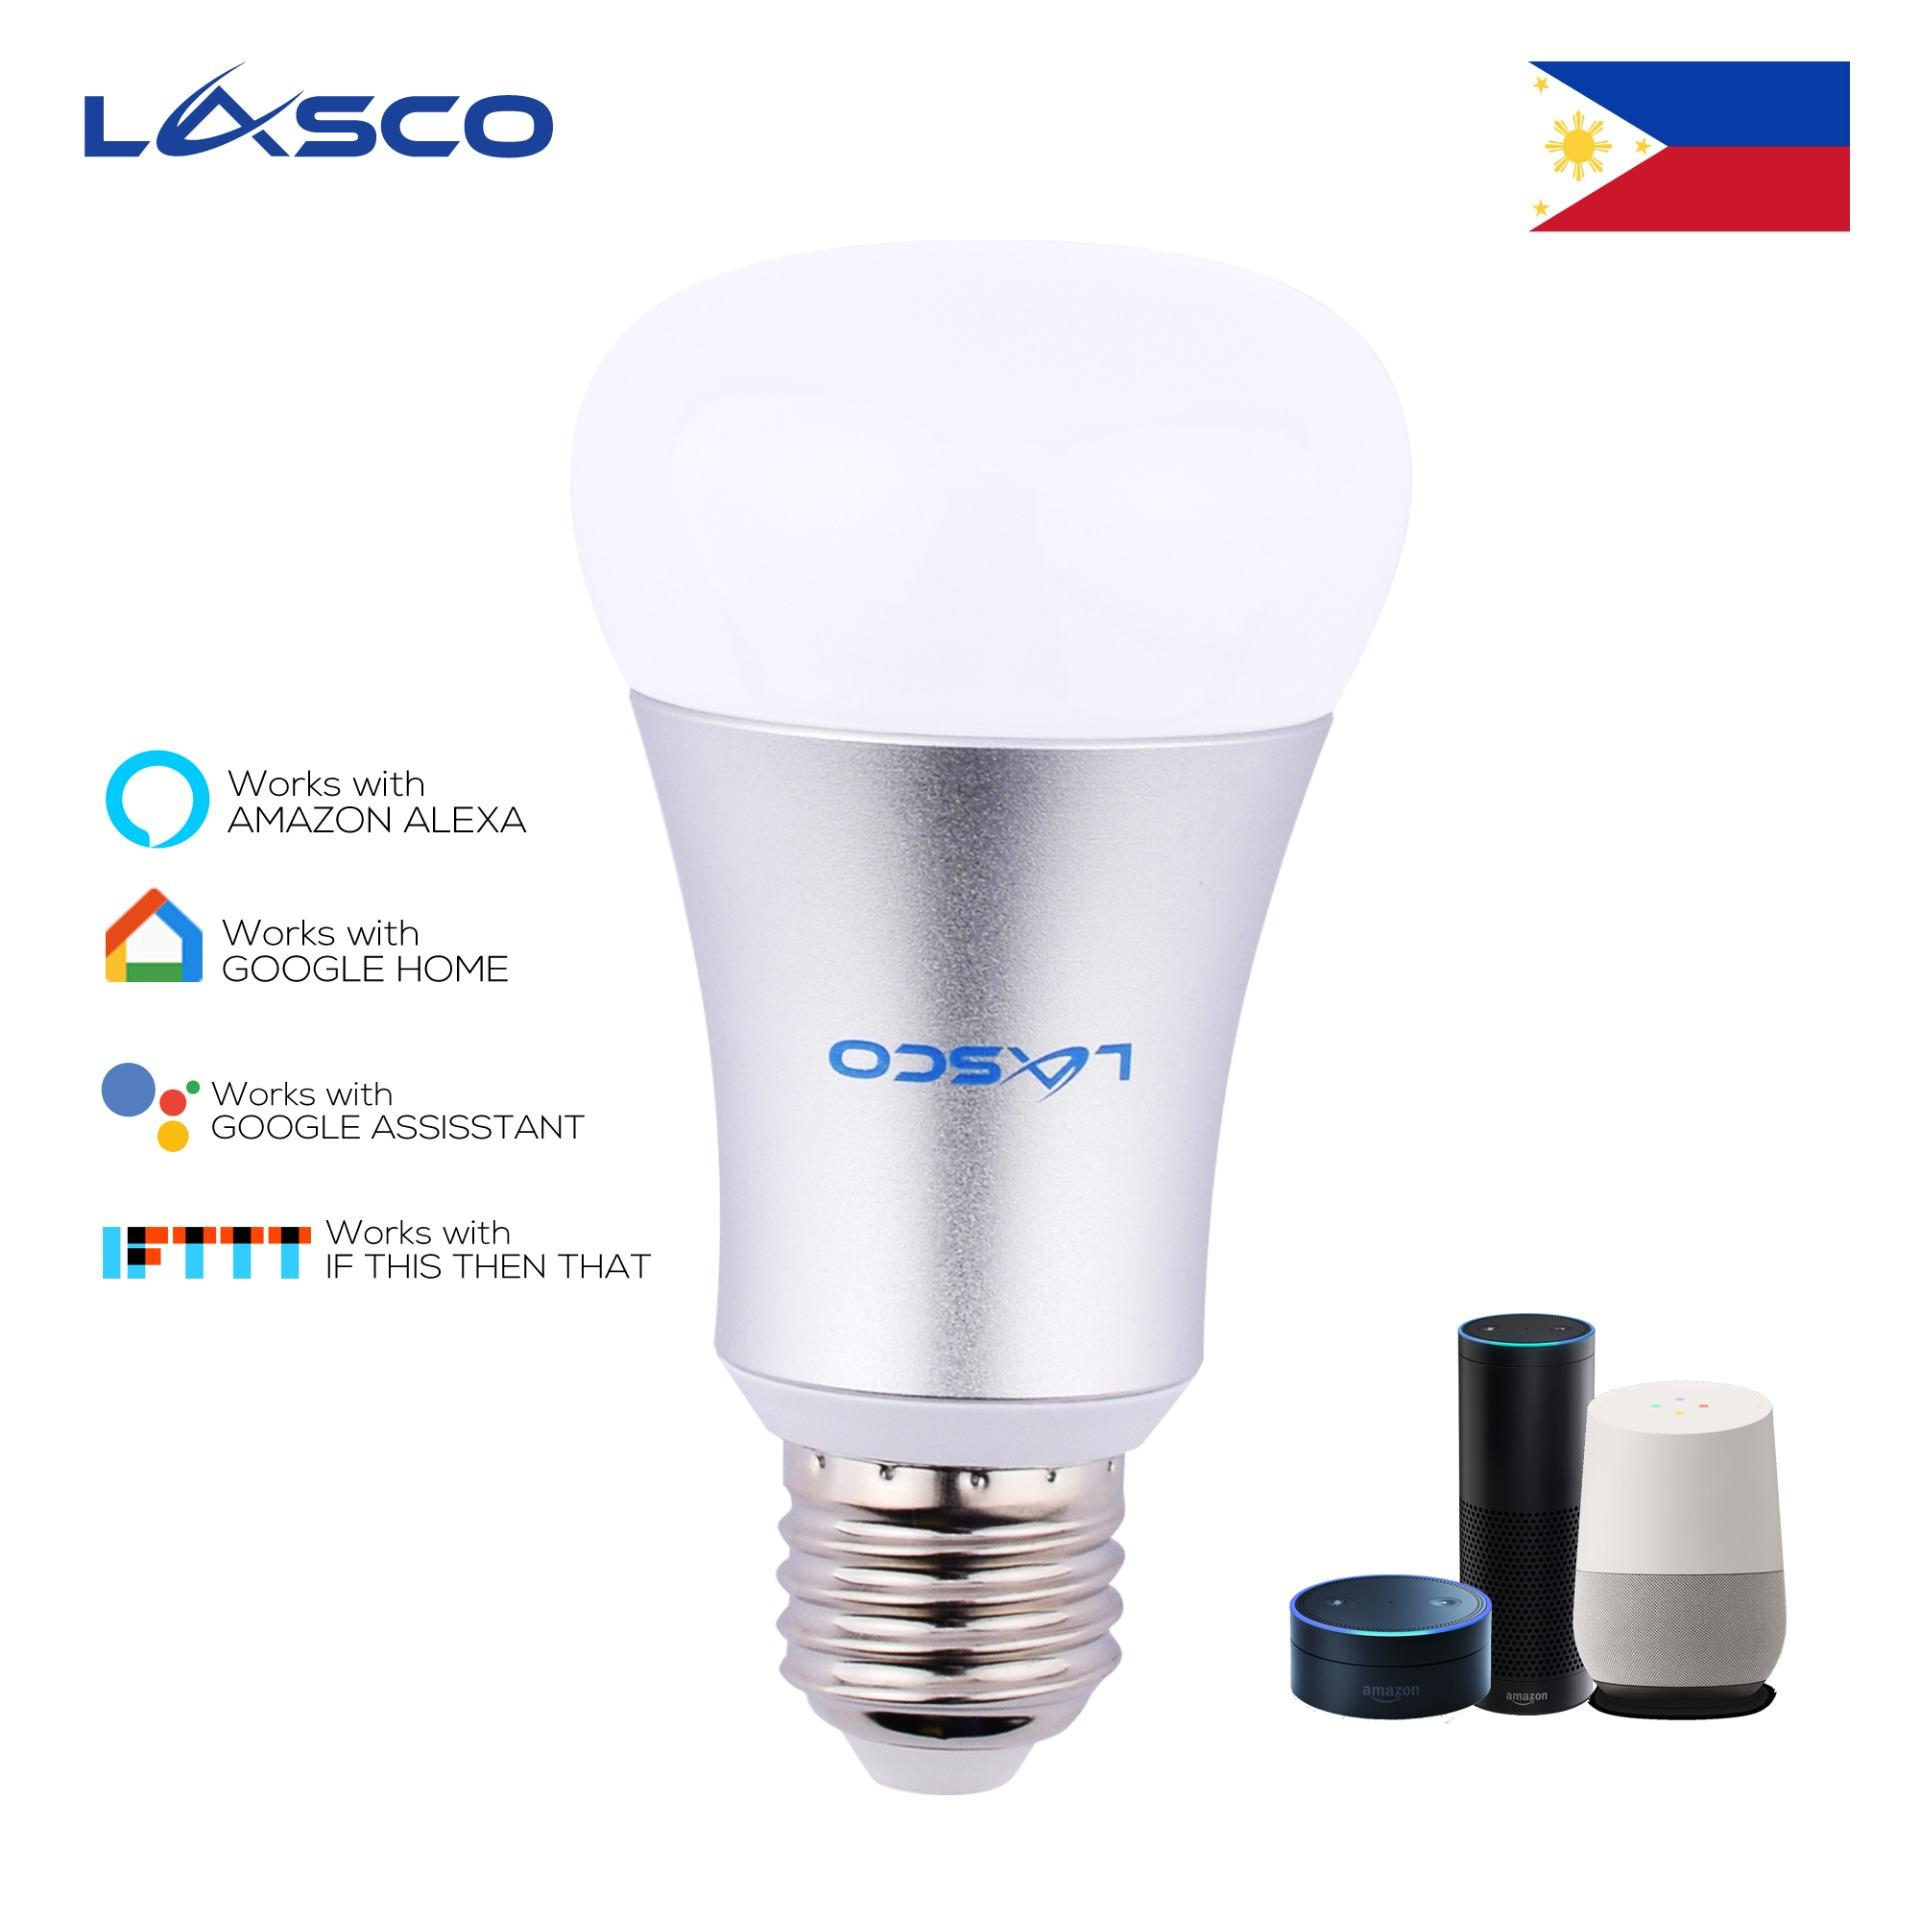 Light Bulbs For Sale Led Prices Brands Review In Driver Design To Replace 100w Lasco Smart Wifi Bulb High Quality Aluminum Housing 7 Watts Rgb Color Changing Works